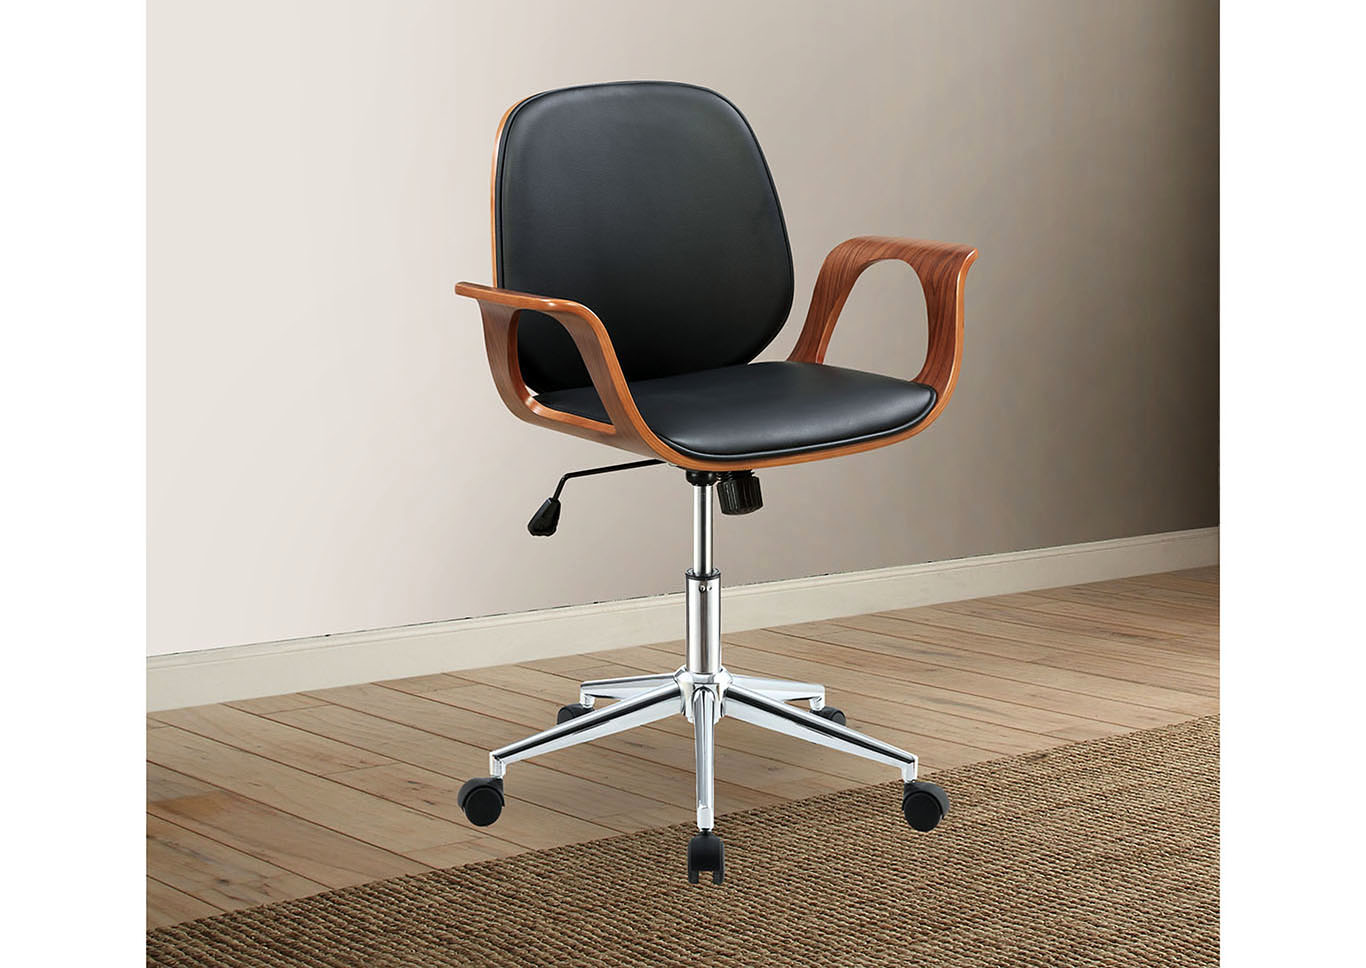 Groovy Best Buy Furniture And Mattress Camila Black Office Chair W Arms Best Image Libraries Counlowcountryjoecom